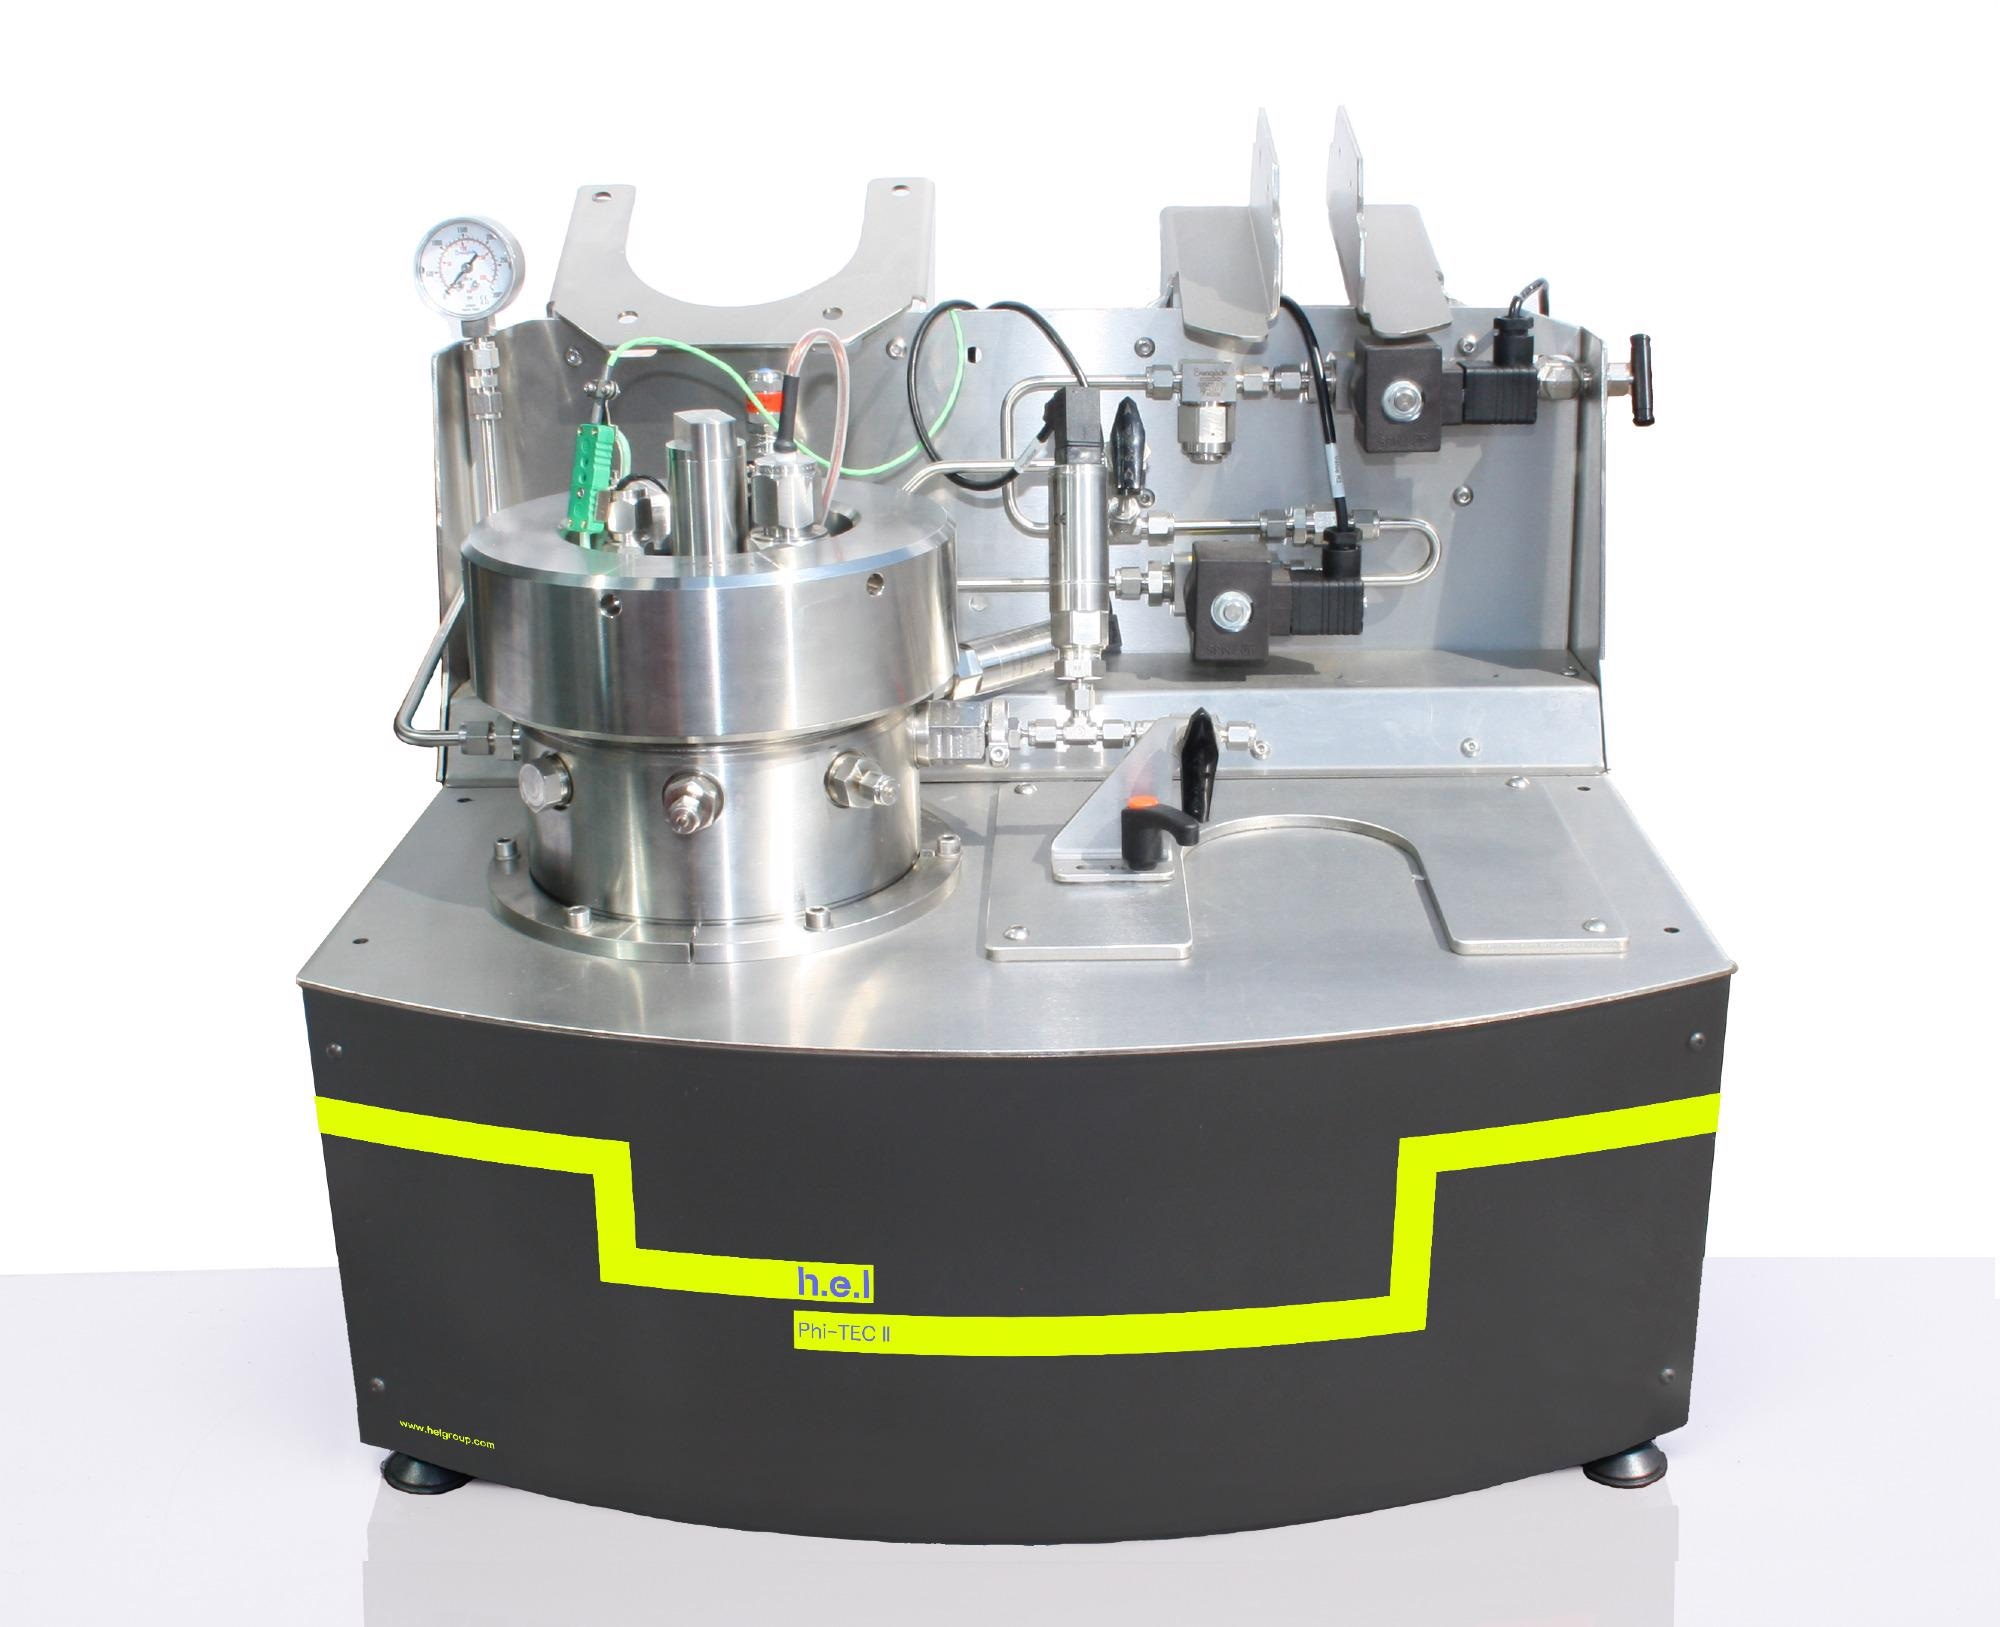 Phi-TEC II: A Bench-Top, Low Phi-Factor, Adiabatic Calorimeter